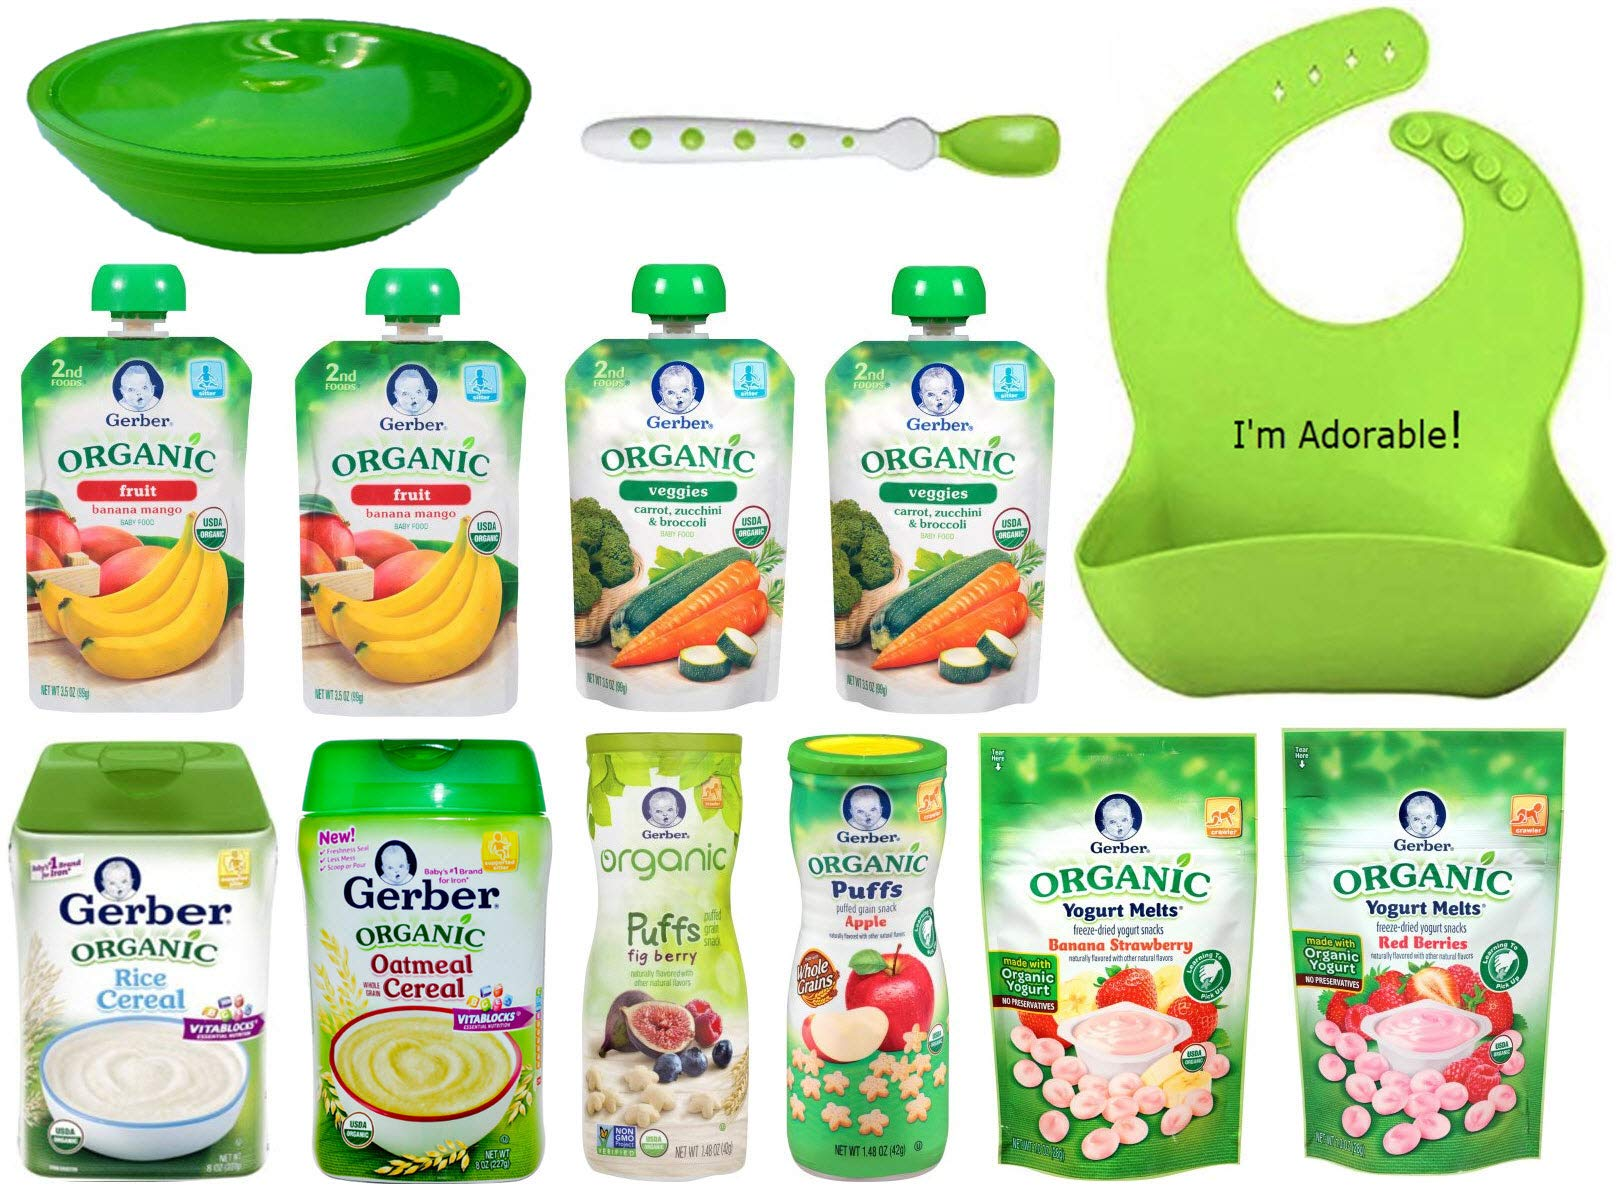 Gerber ORGANIC Baby Food Assorted Meals Gift Basket: Cereal, Puffs, Yogurt Melts, Food Pouches + Spoon, Bowl, Waterproof Silicone Bib, Gift Box For Babies, Crawlers and Toddlers Bundle of 13 items